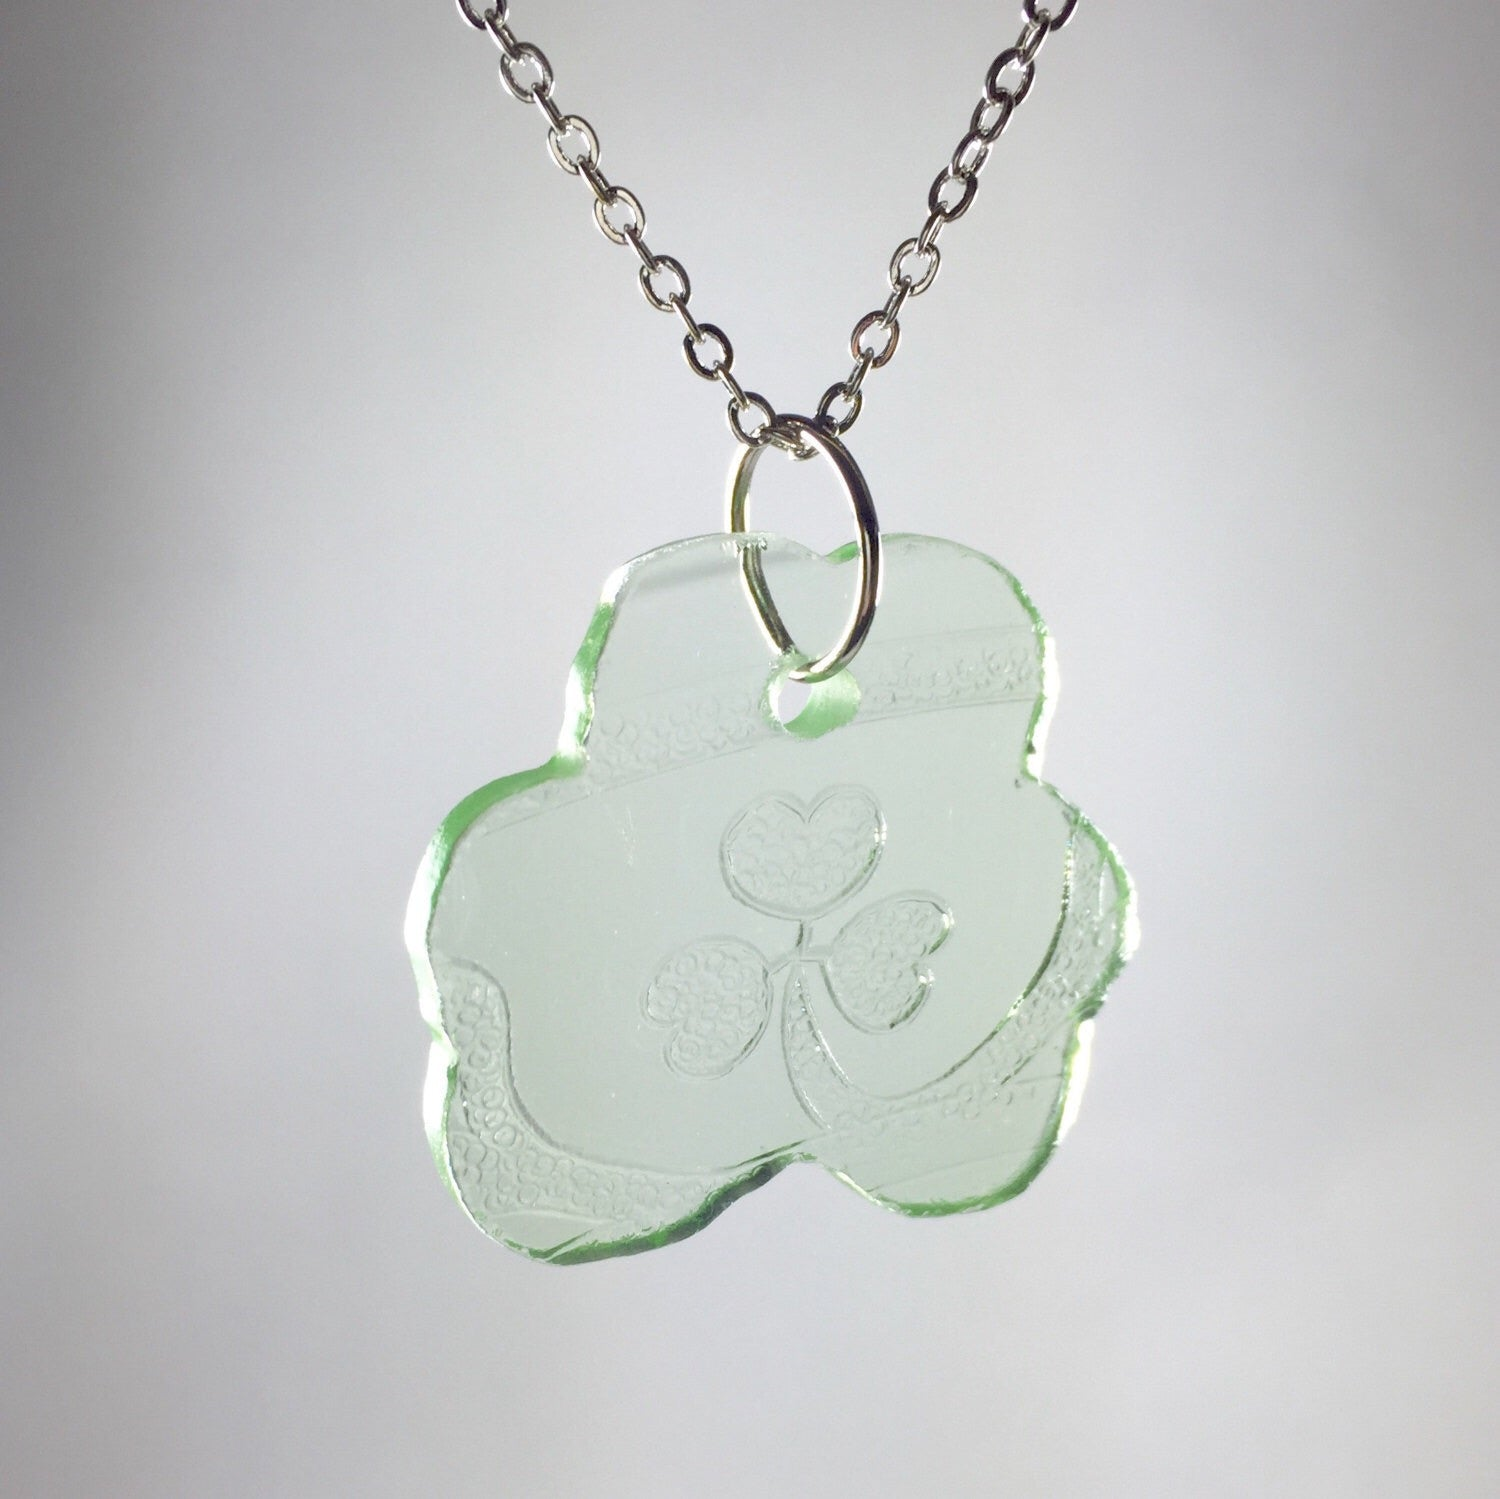 Green clover Depression Glass Necklace